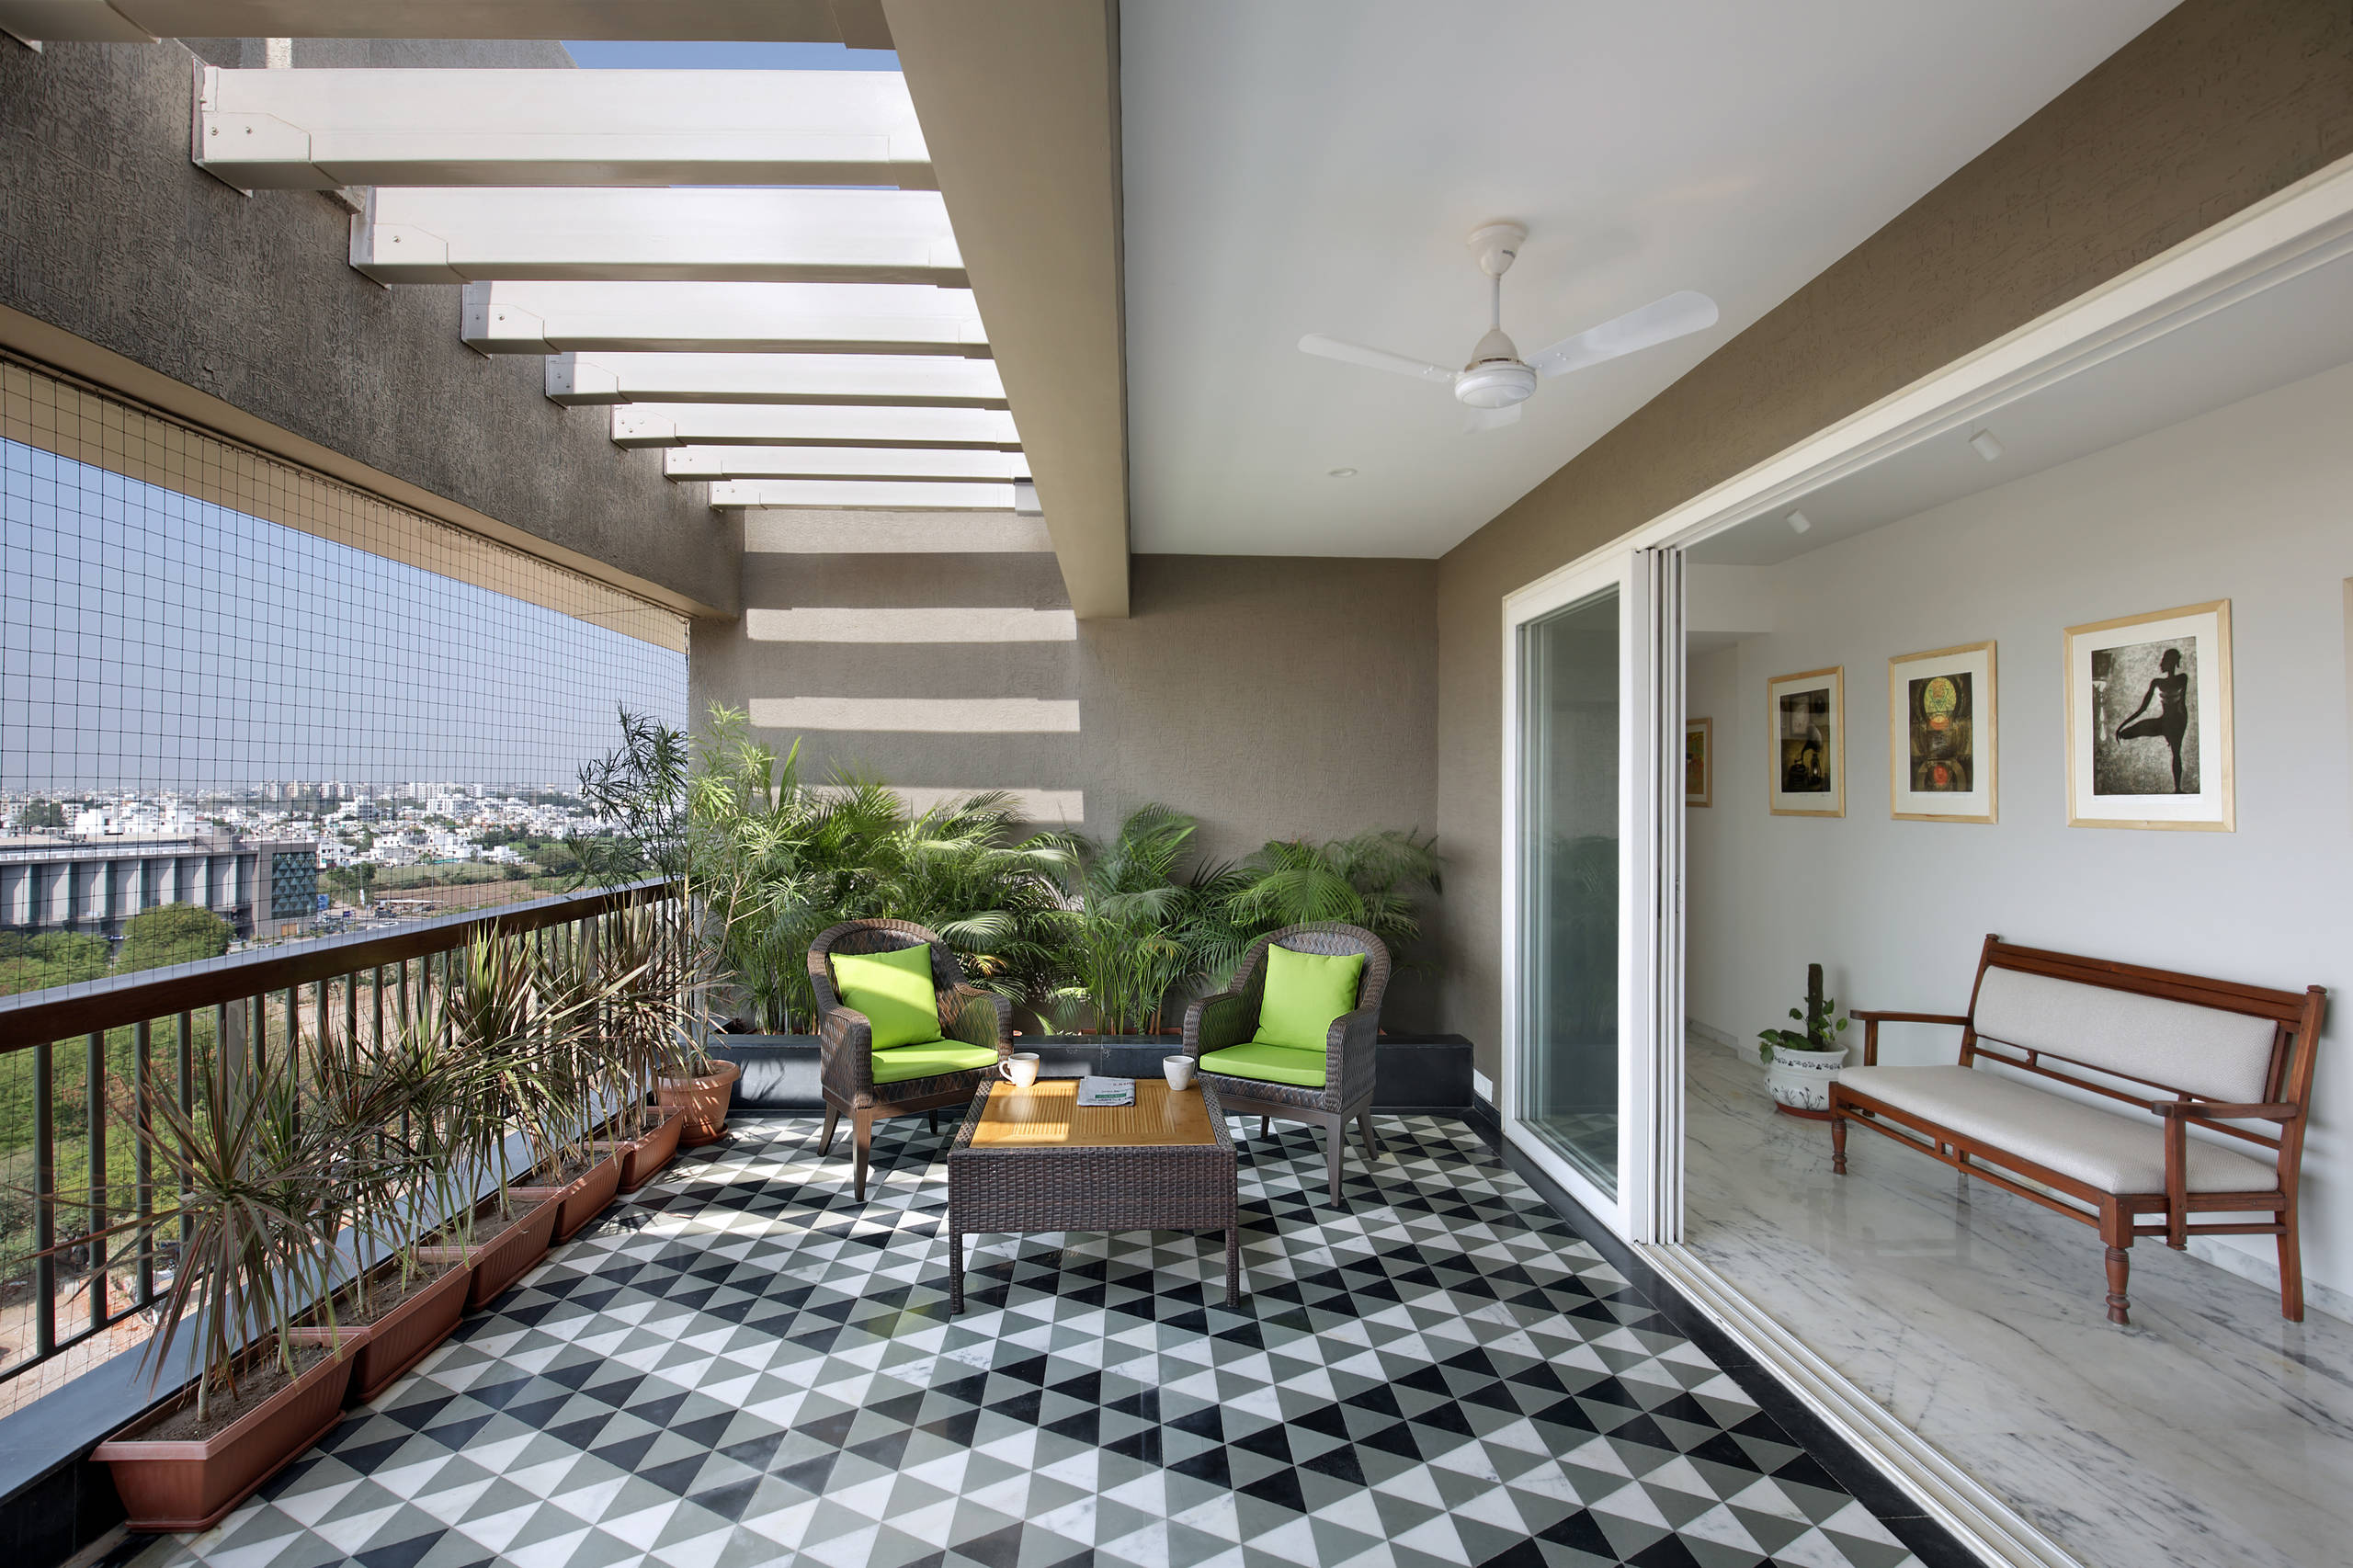 16 Beautiful Balcony With A Roof Extension Pictures & Ideas